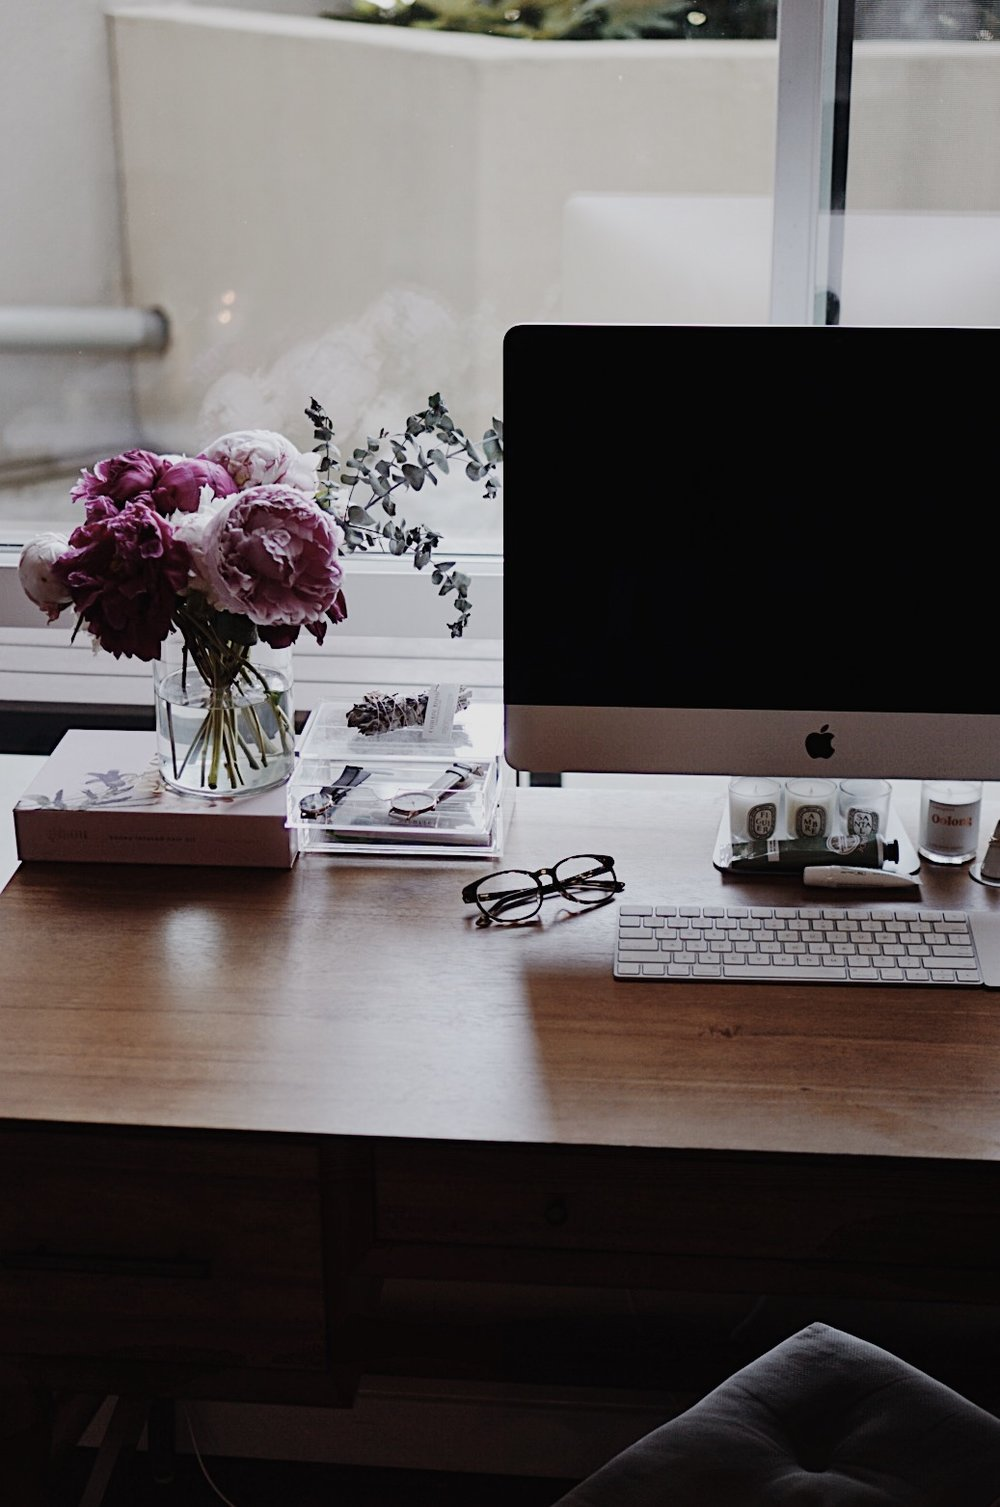 Tips on Working With PR & Brands for Bloggers